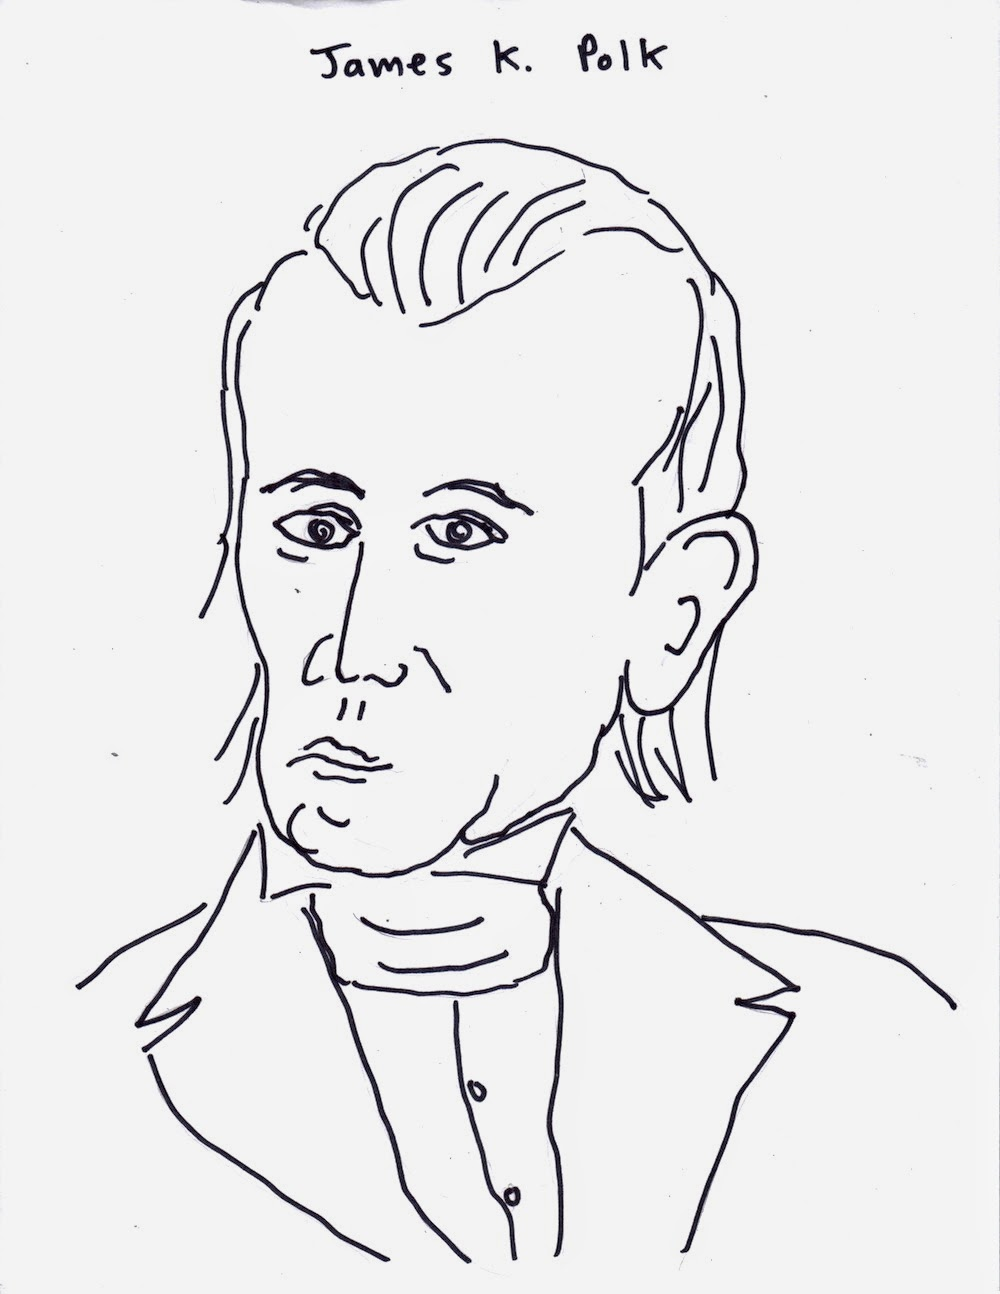 james k polk coloring pages - photo#16